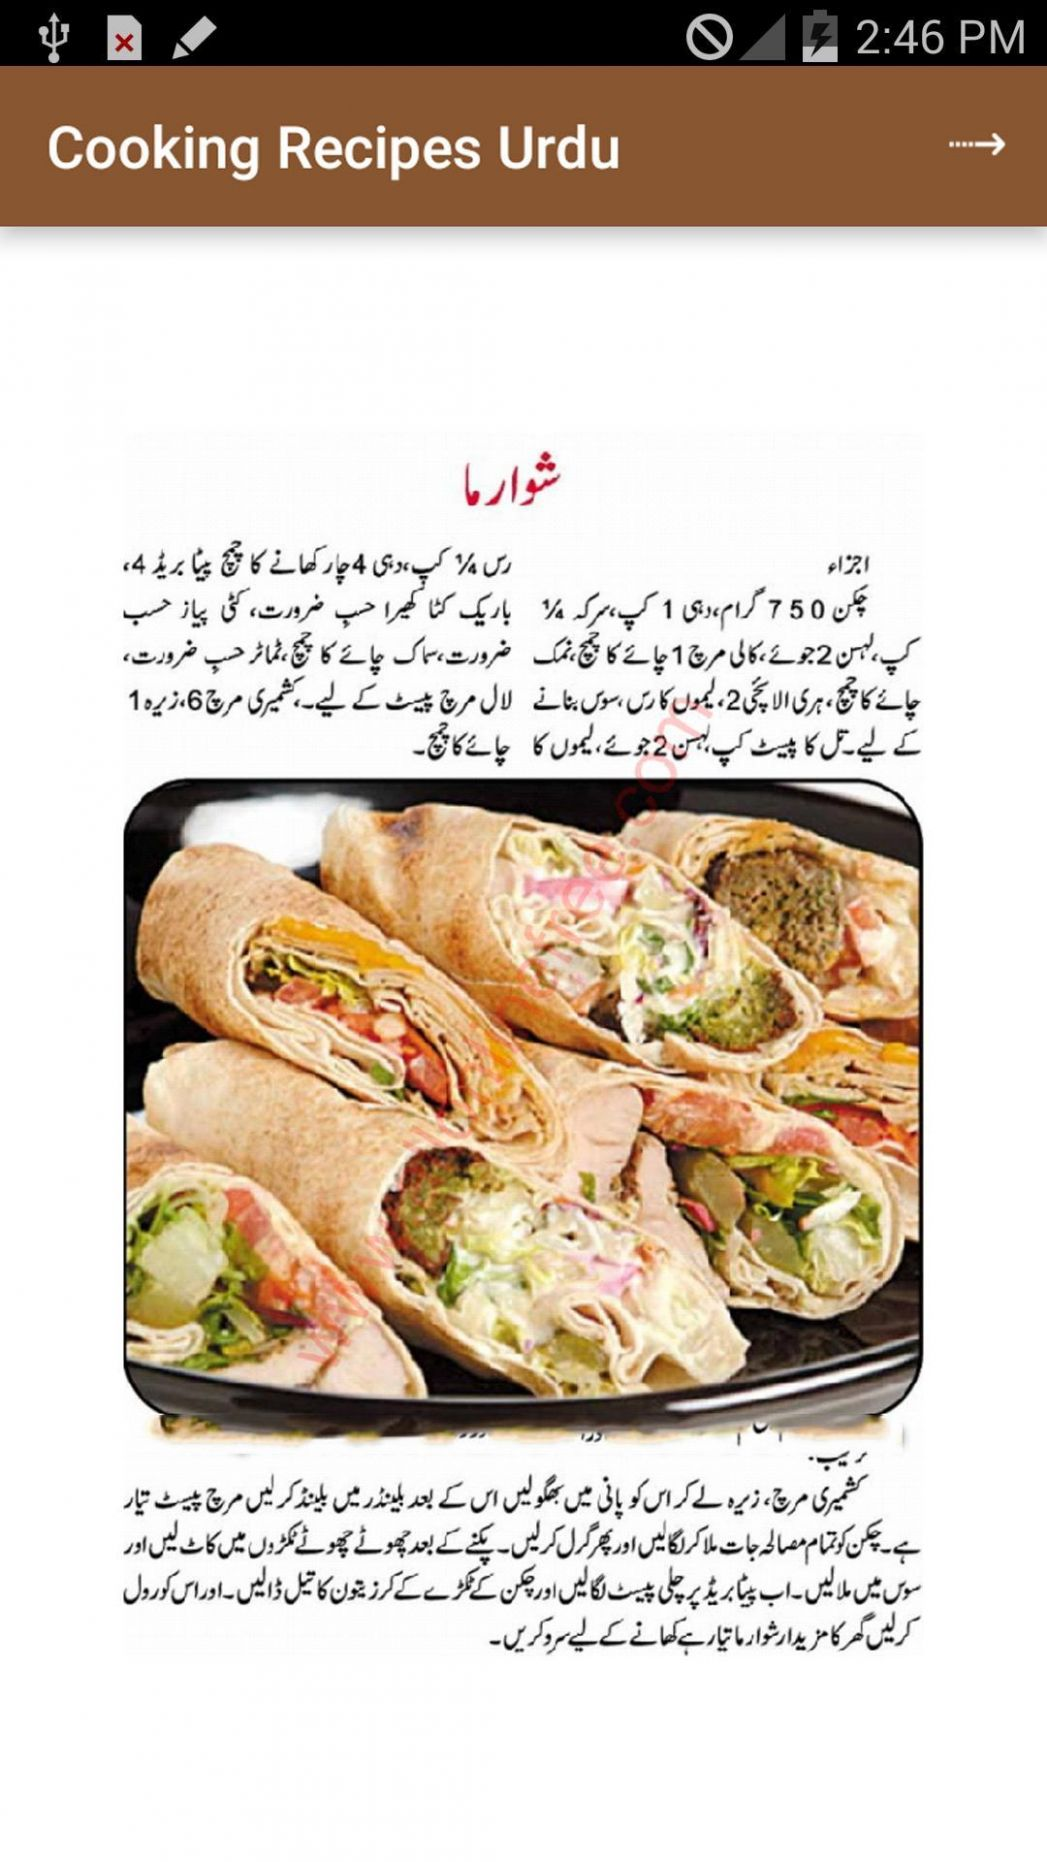 Cooking Recipes in Urdu for Android - APK Download - Urdu Recipes Free Download